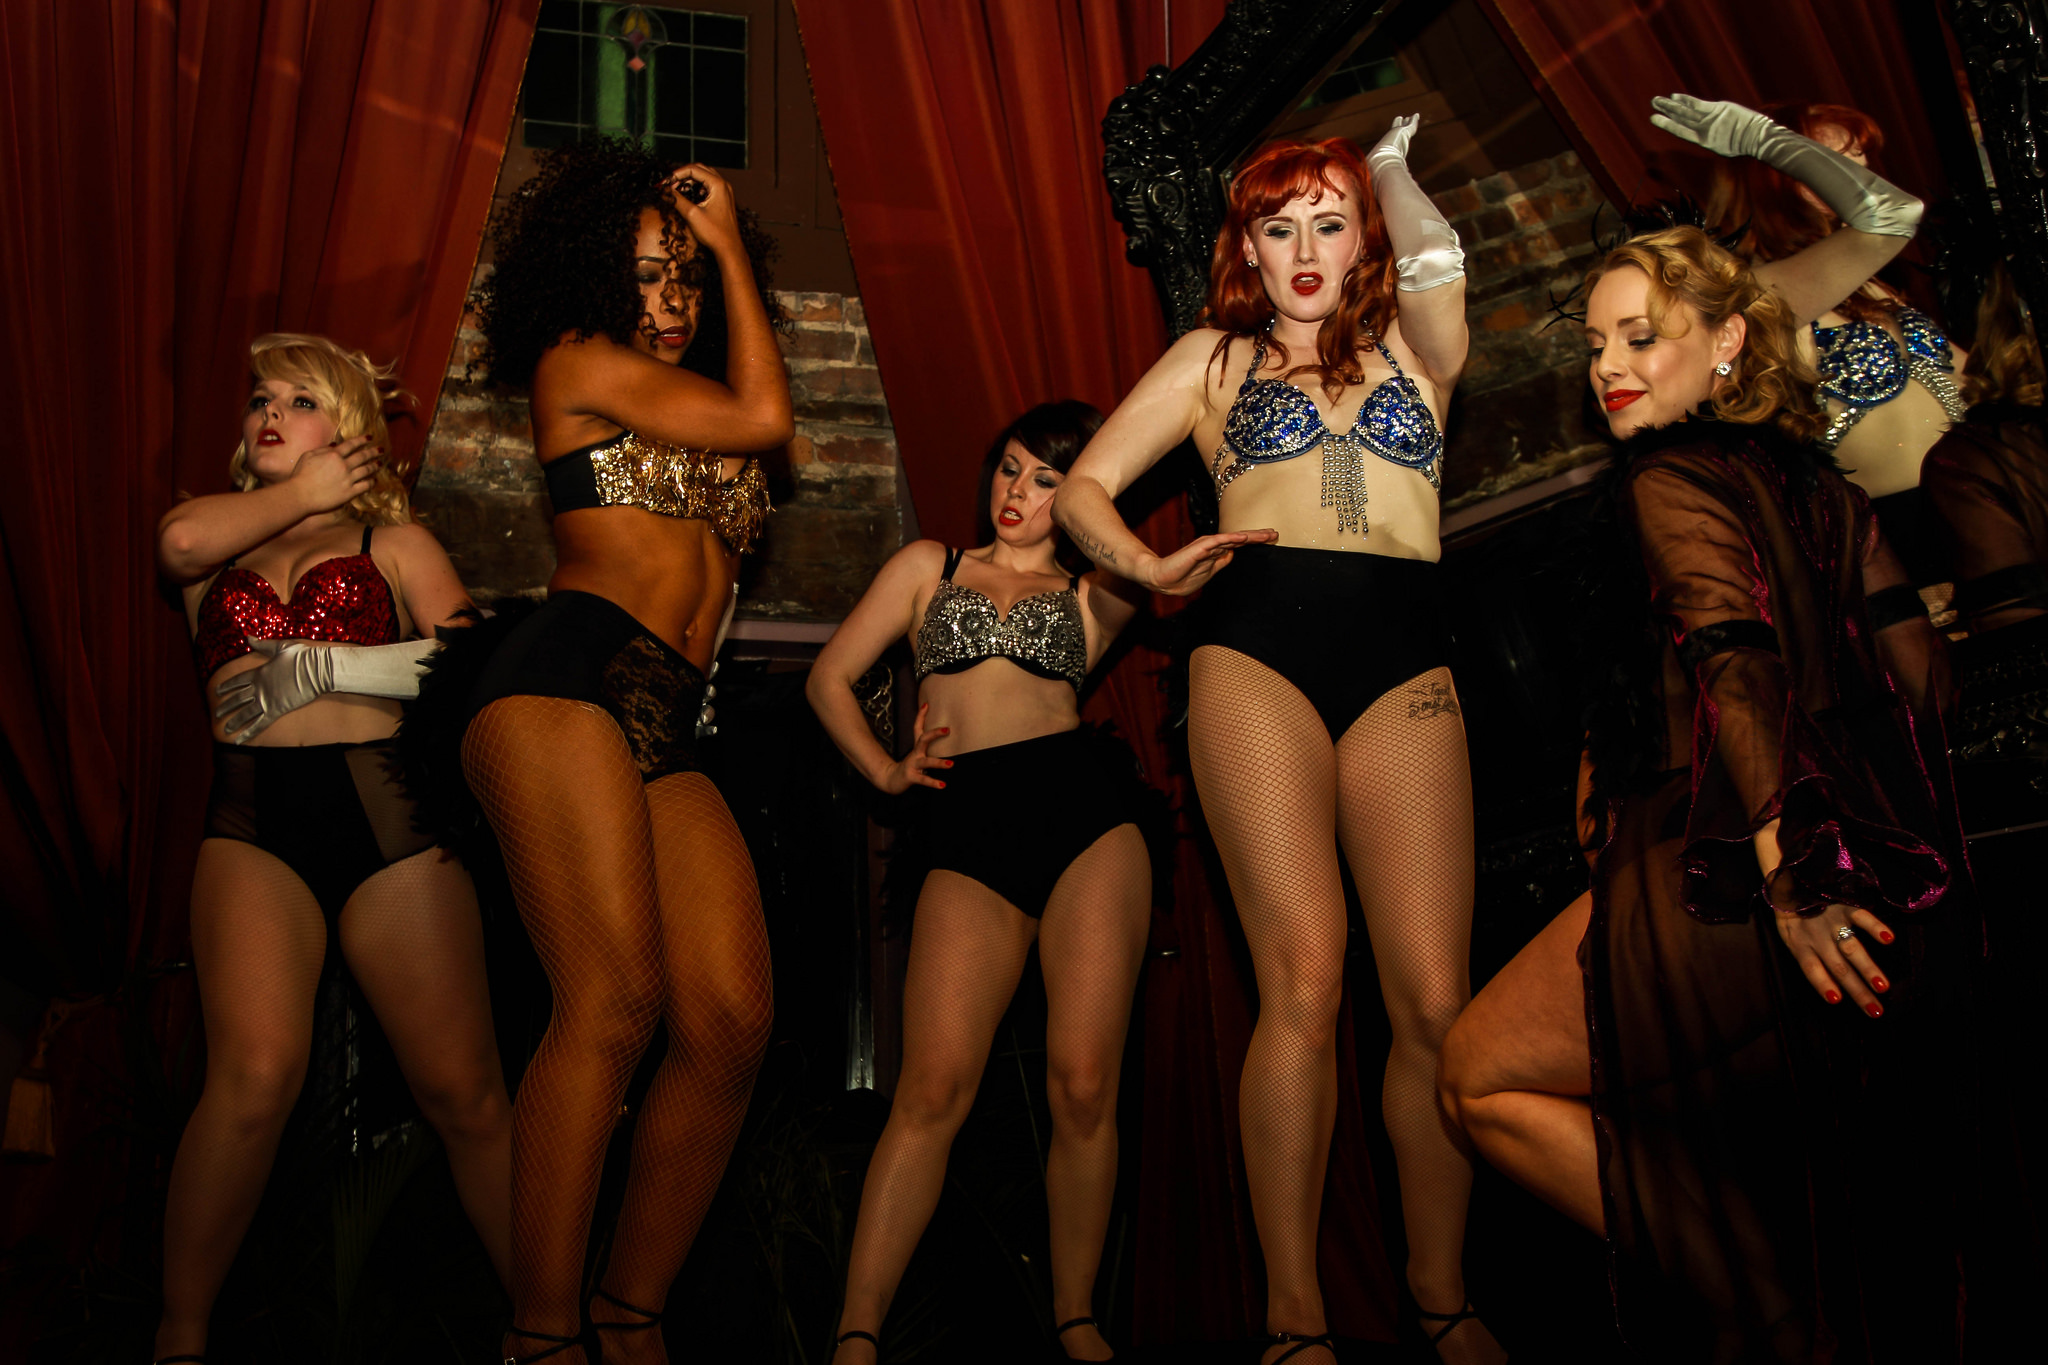 You can watch a burlesque show in New Orleans nearly every night of the week. (Photo credit: DivaGirl)